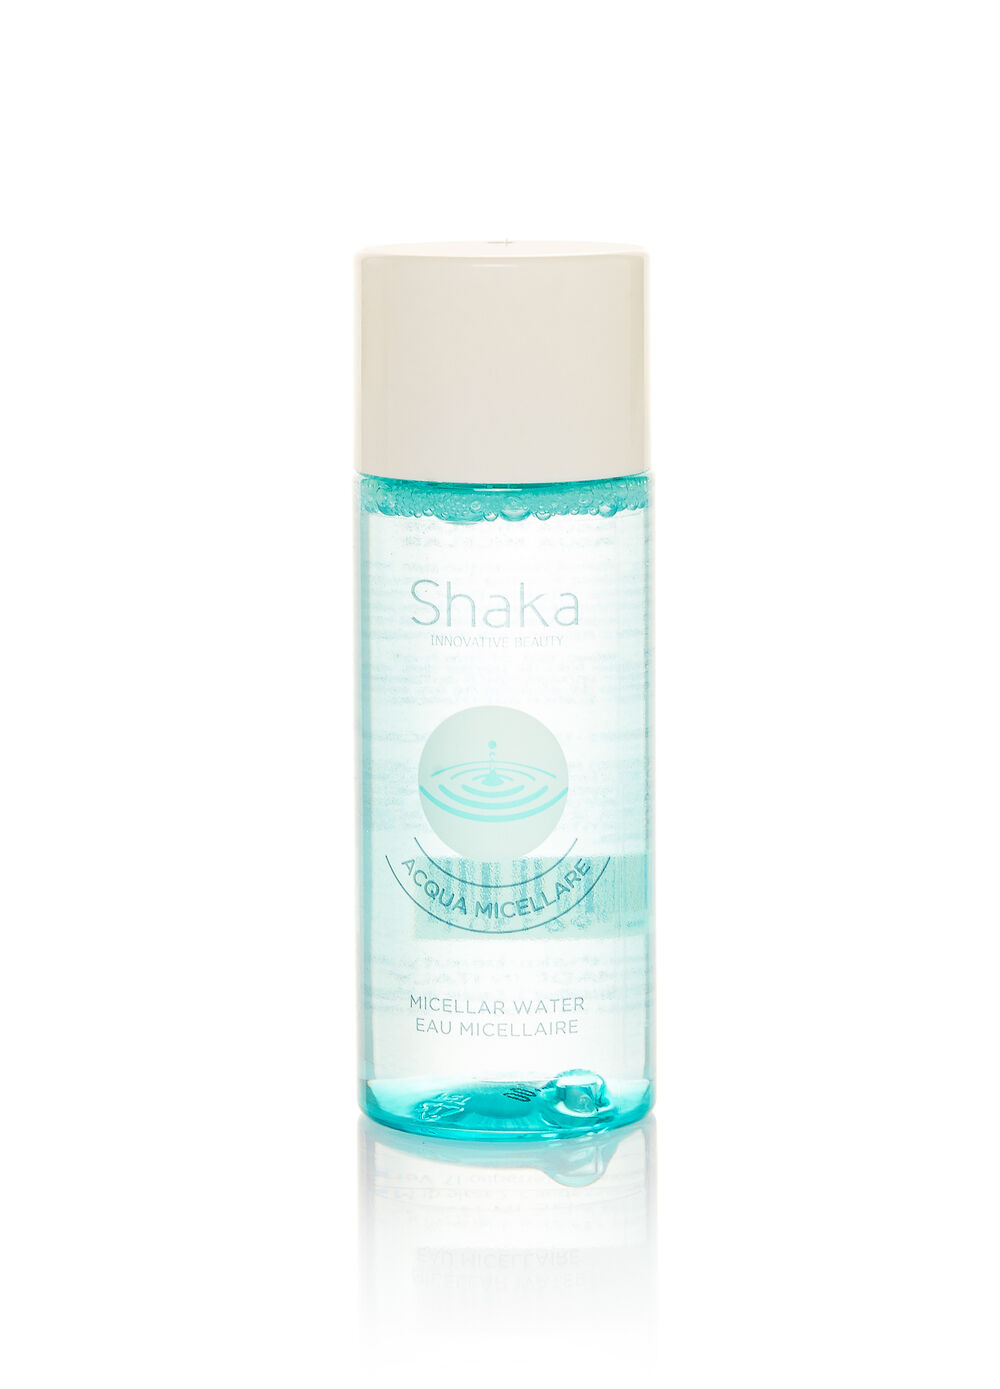 Acqua micellare 50 ml